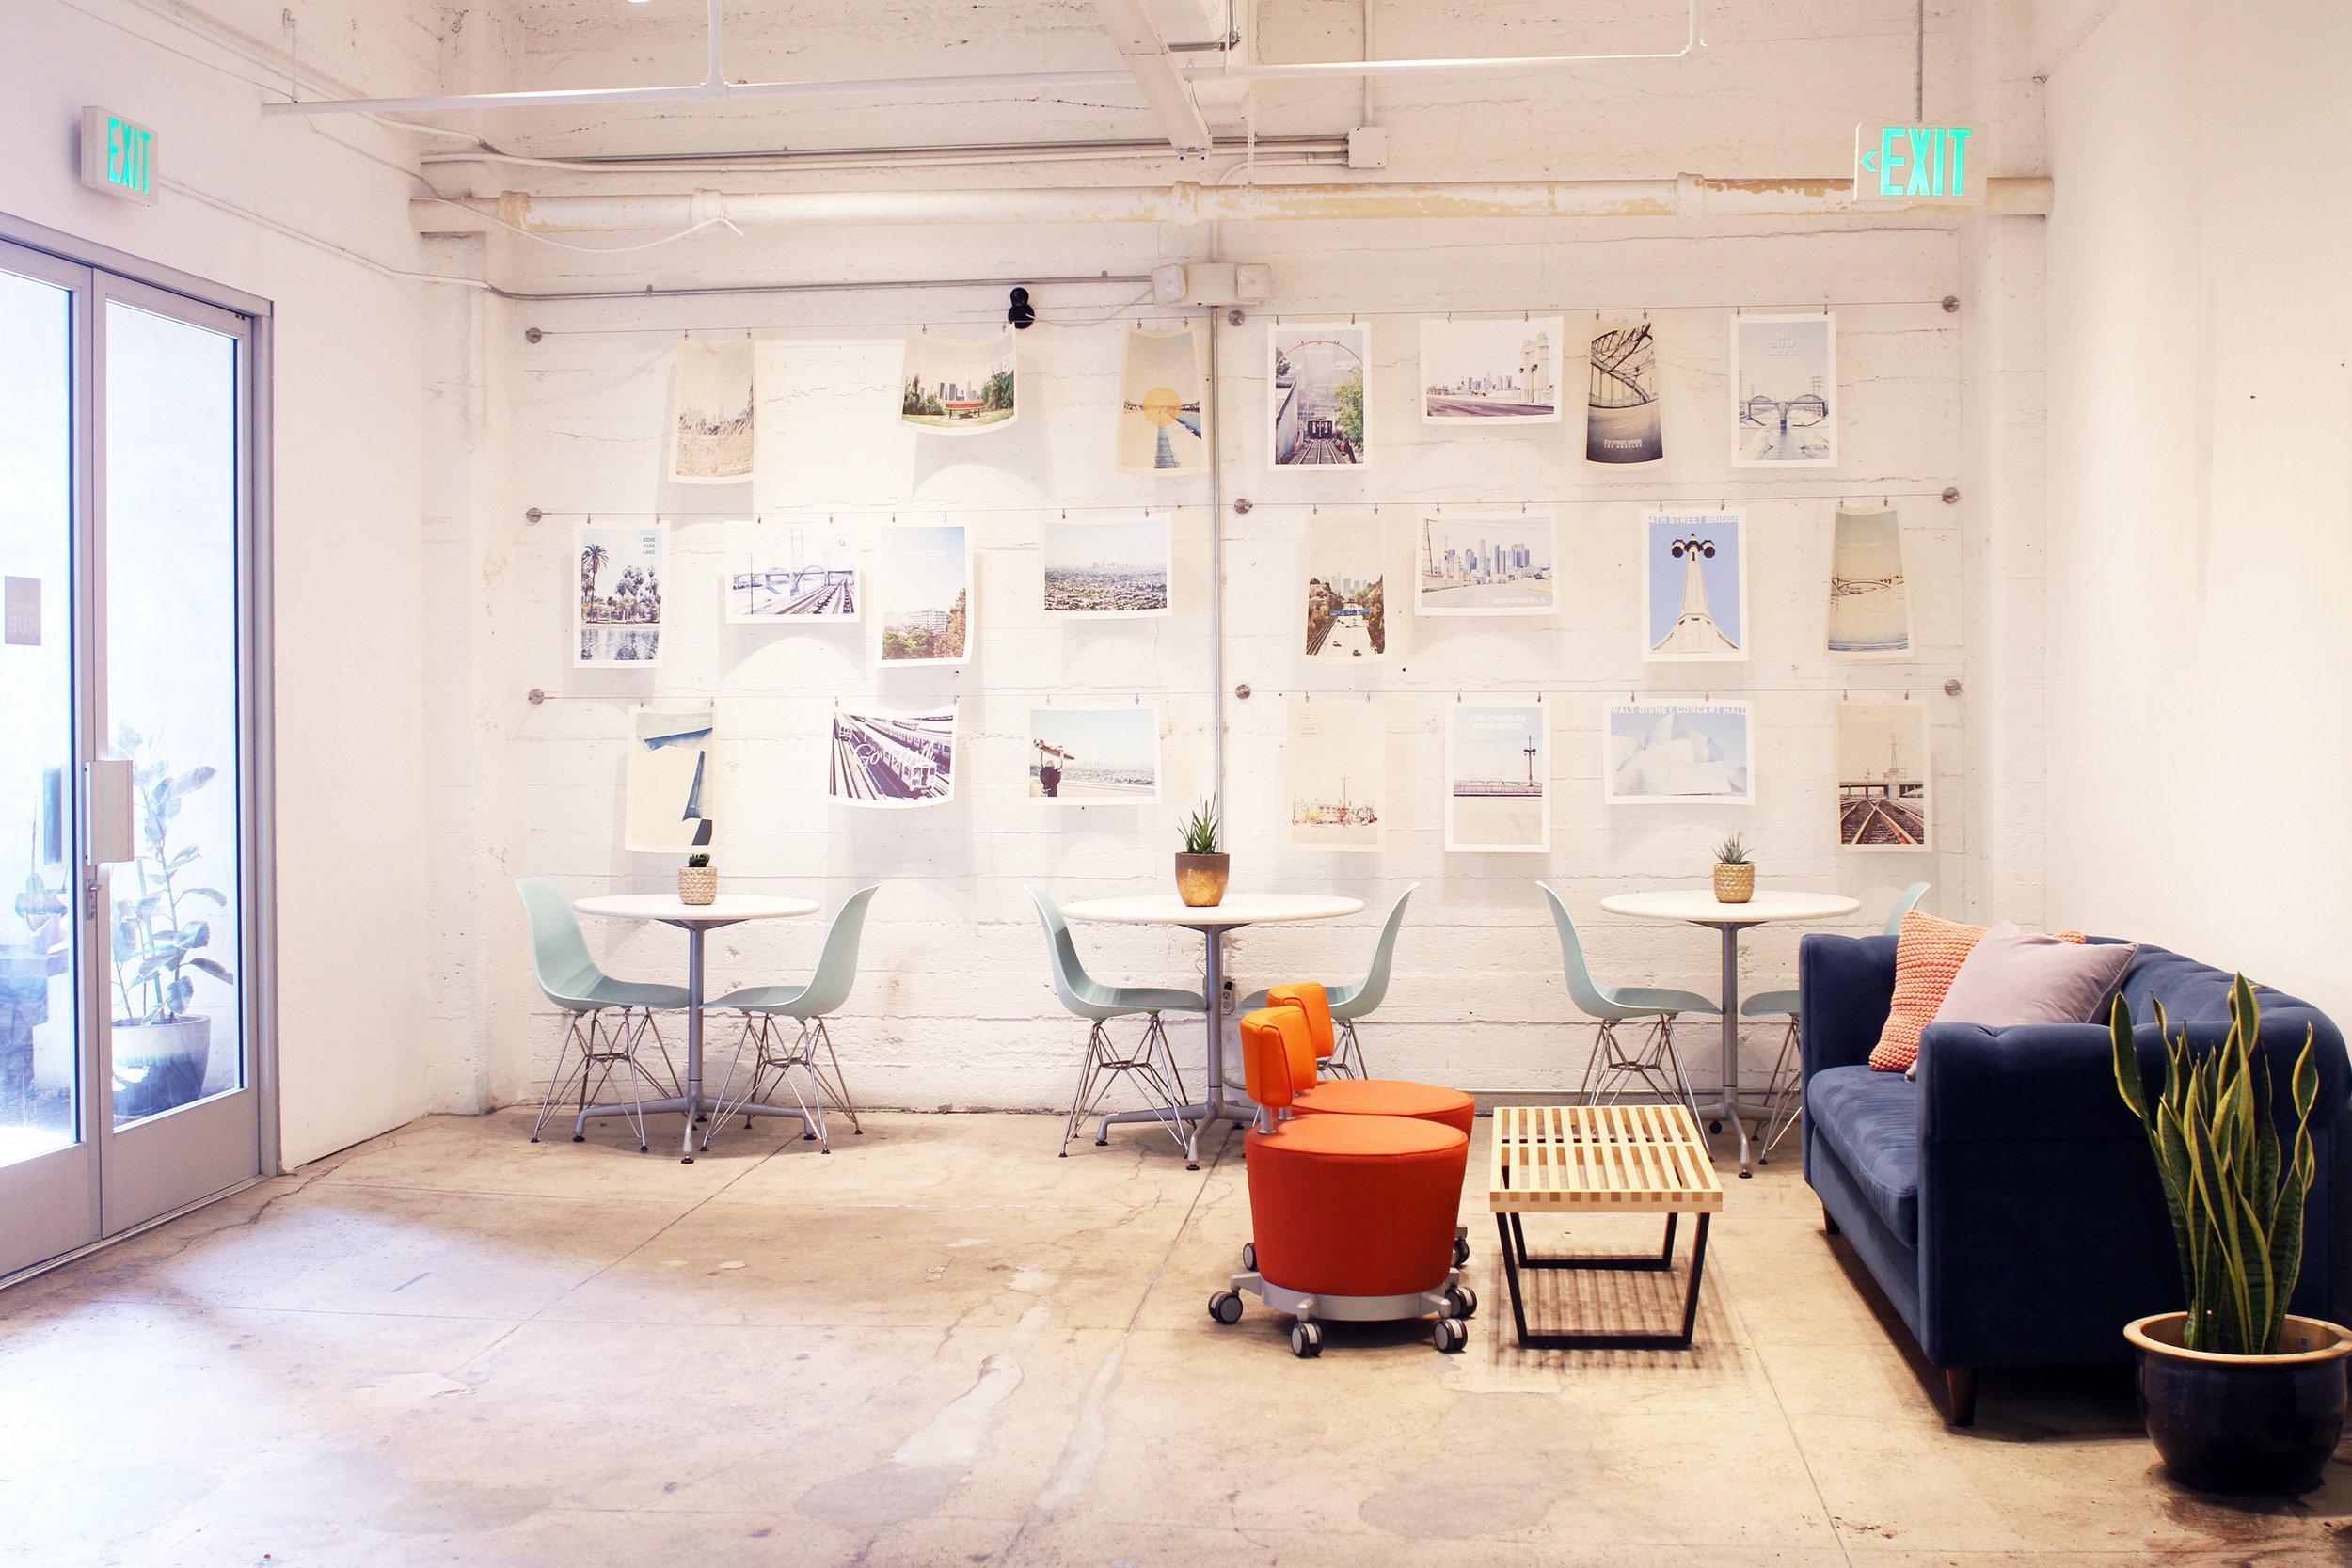 Art of Freelance is a BIG fan of the Hub located in the Arts District in Downtown Los Angeles. It's one of the participating coworking spaces in the Croissant network.